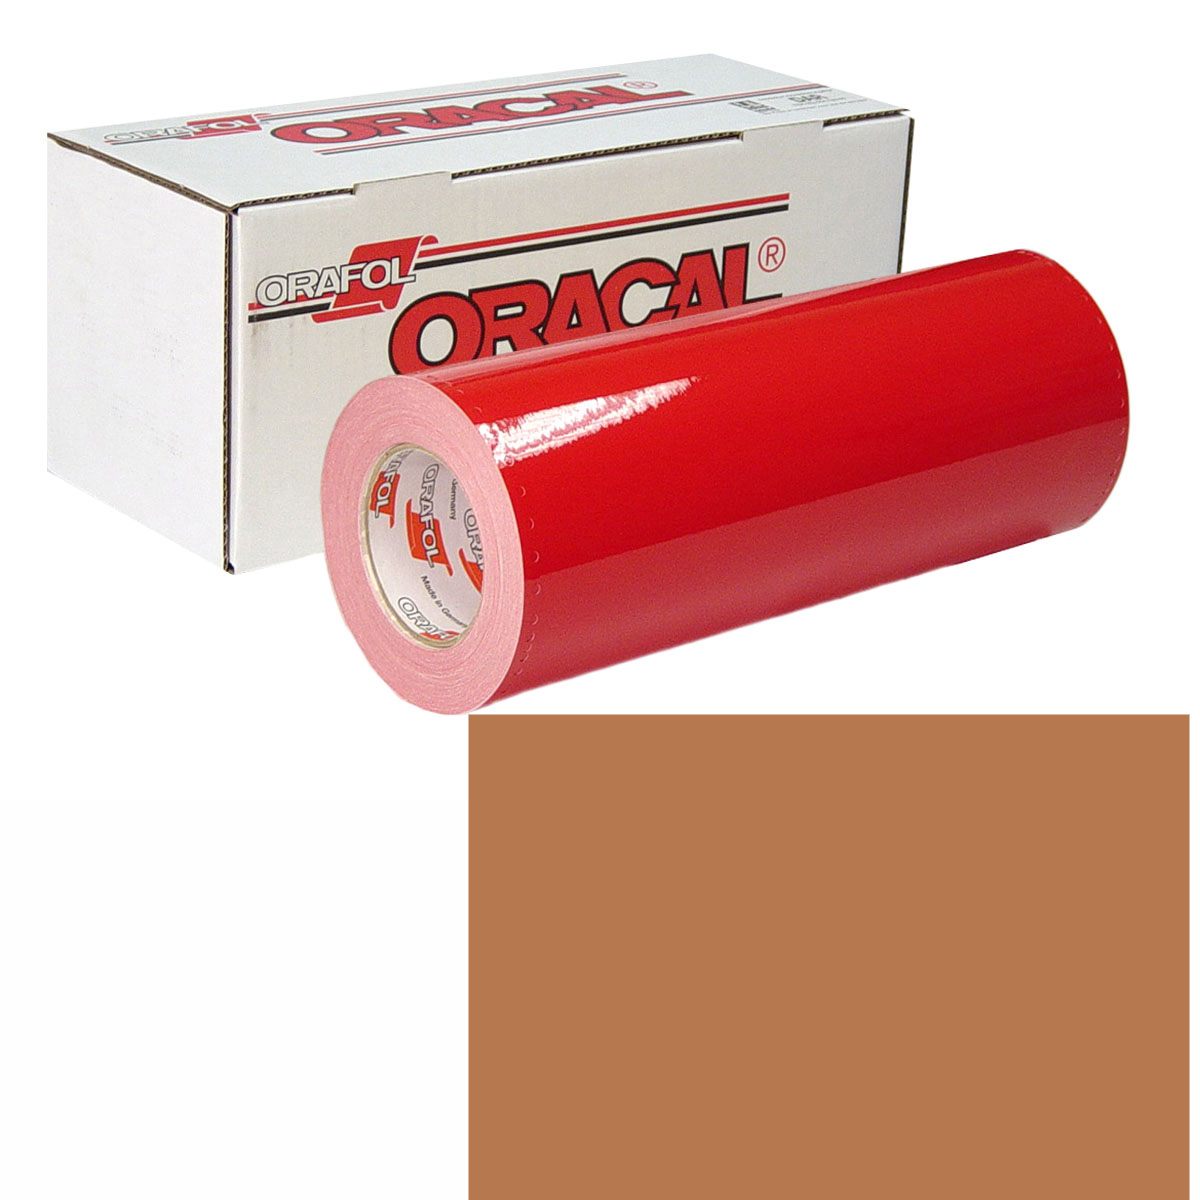 ORACAL 951M Unp 24in X 10yd 366 Red Gold